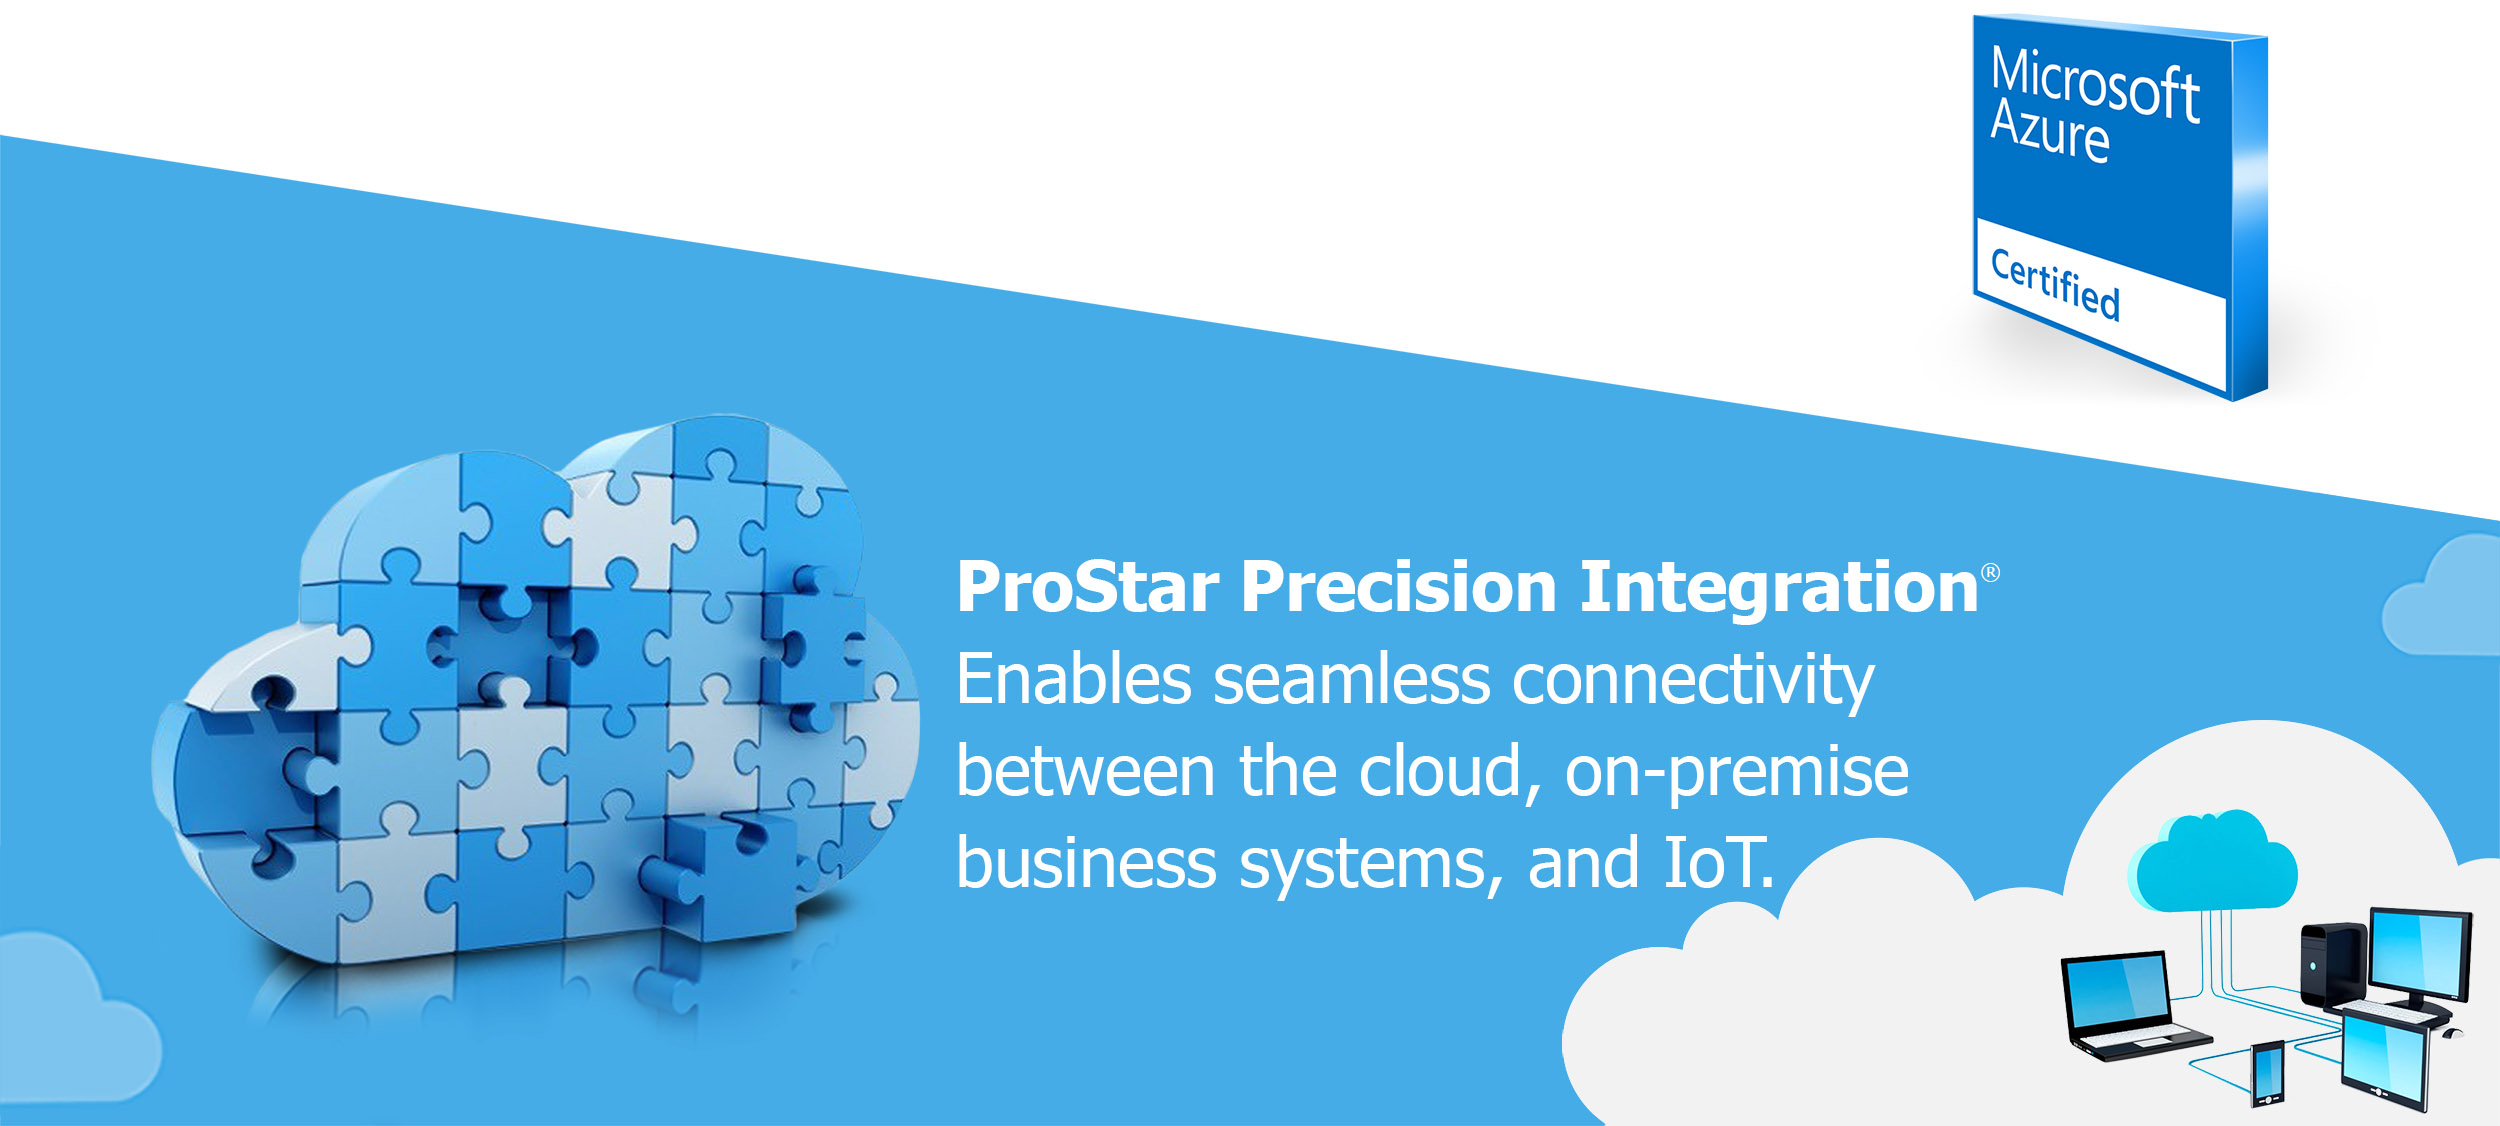 ProStar Precision Integration: Enables Seamless Connectivity between the Cloud, On-Premise Business Systems, and IoT